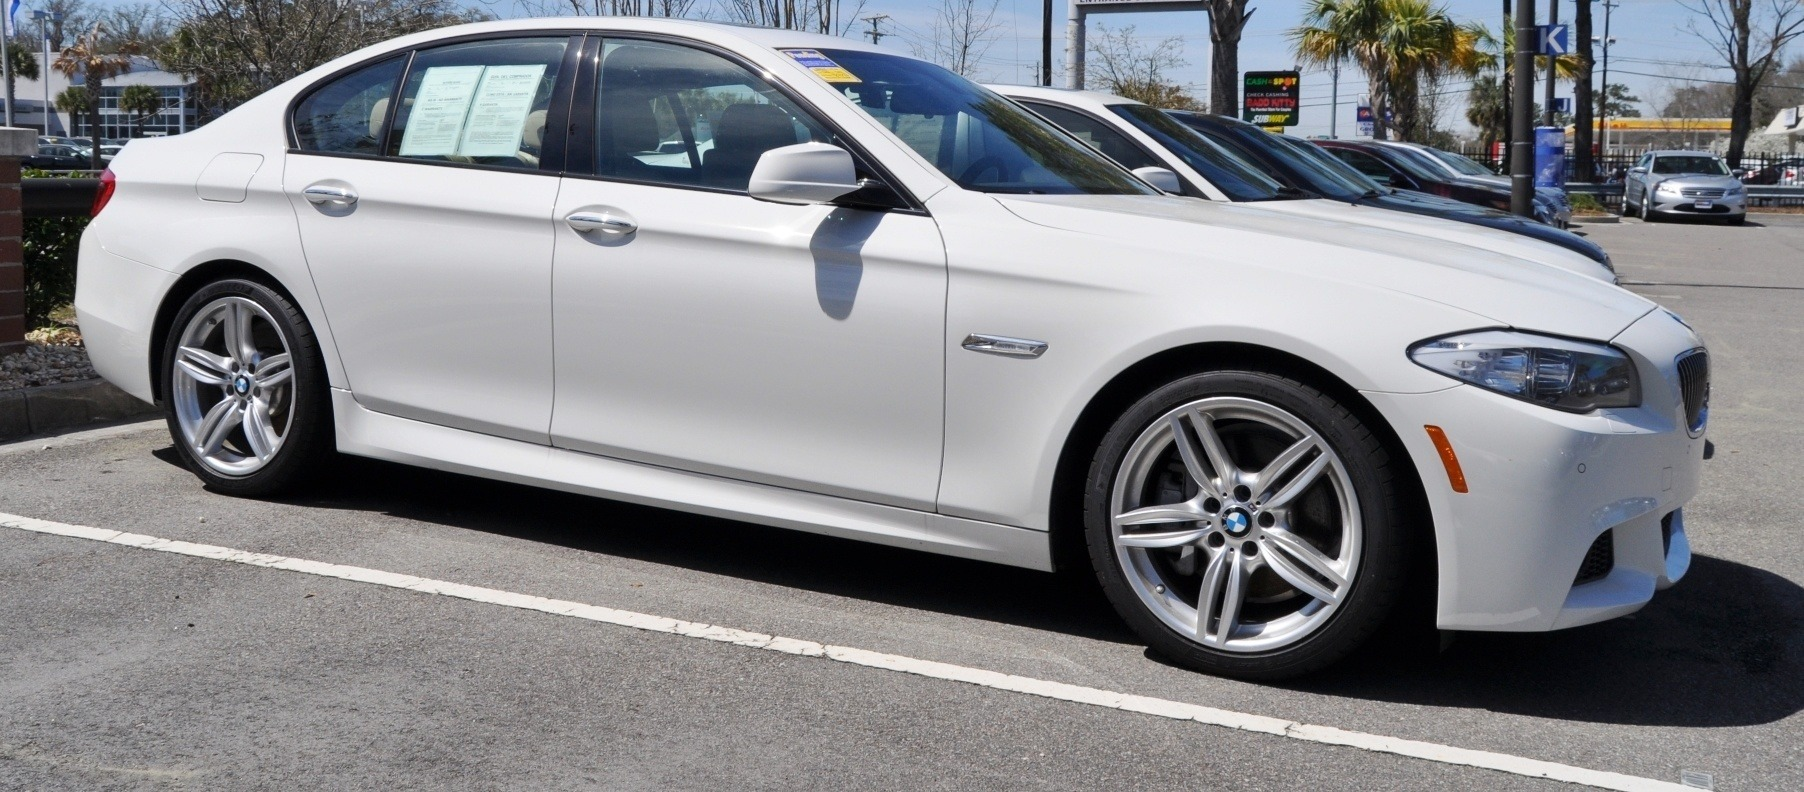 HD Video Road Test -- 2013 BMW 535i M Sport RWD -- Refined but Still Balanced, FAST and Posh 5